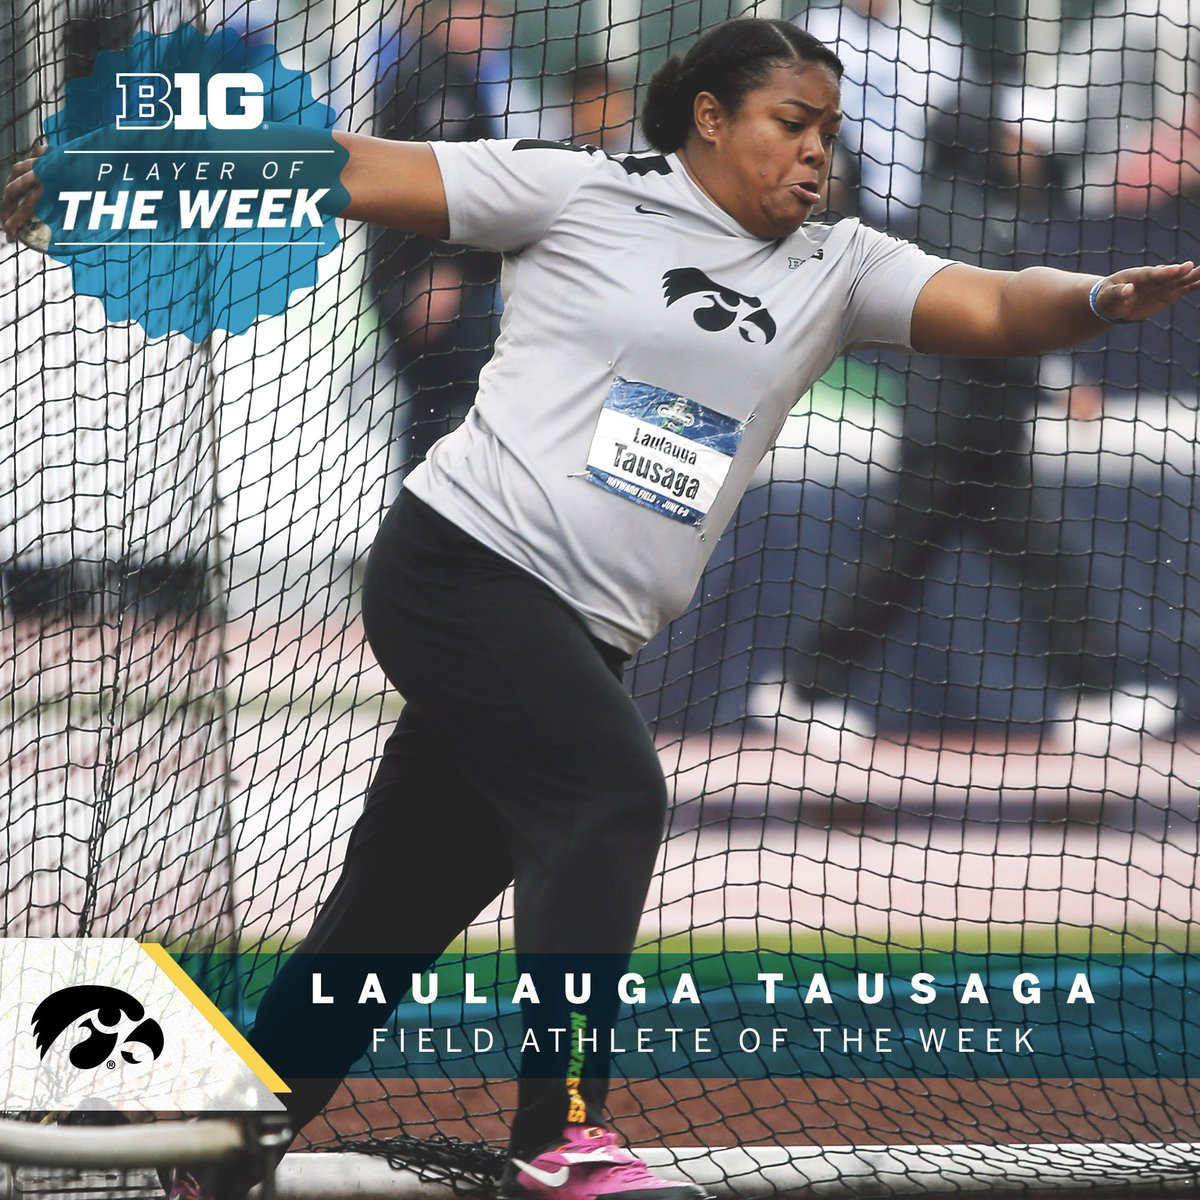 Laulauga Tausaga of @IOWAXC_TF picked up her third consecutive #B1GTF Outdoor Field Athlete of the Week honor and fourth of her career, breaking three school records and winning all three field events at last weekend's Mt. SAC Relays and Beach Invitational in southern California